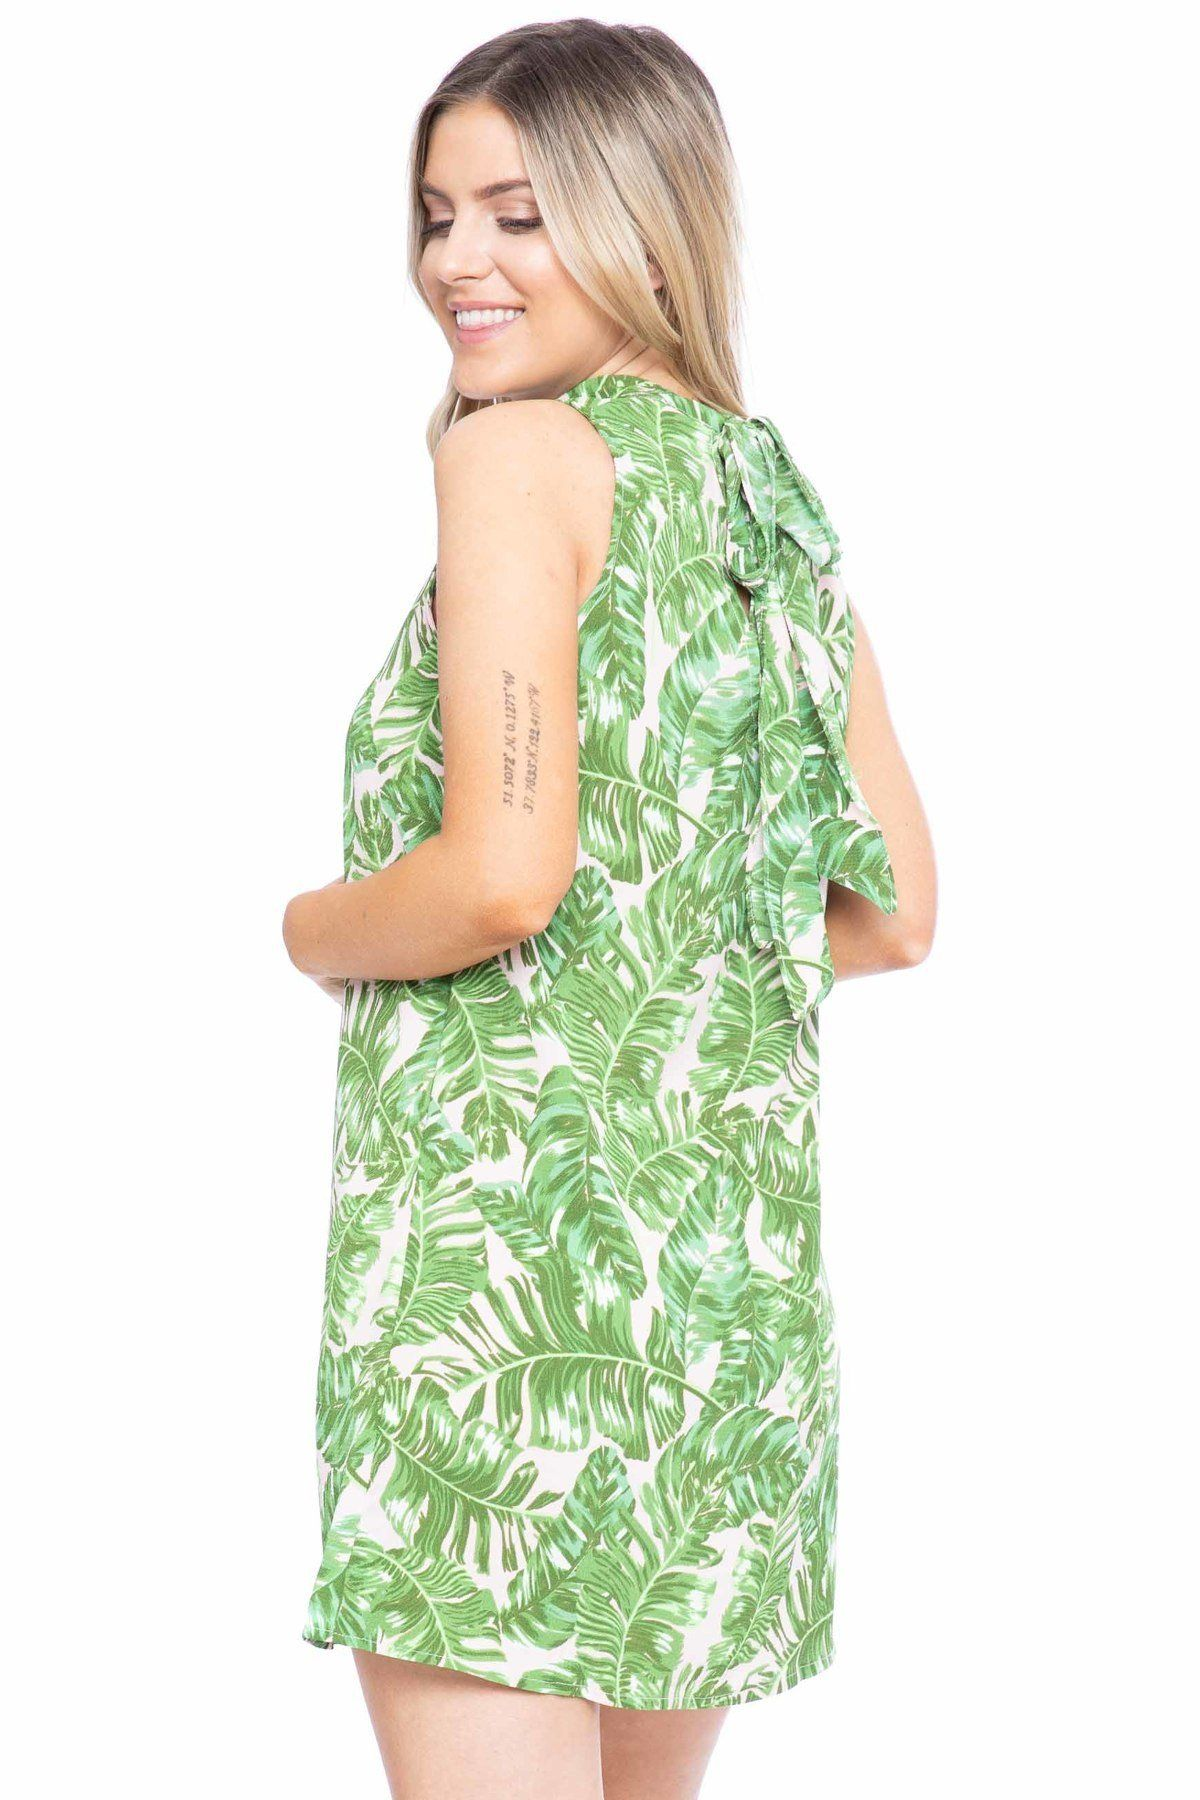 Hawaiian Leaf Print, Sleeveless, A-line Dress - Absolute Fashion 2020